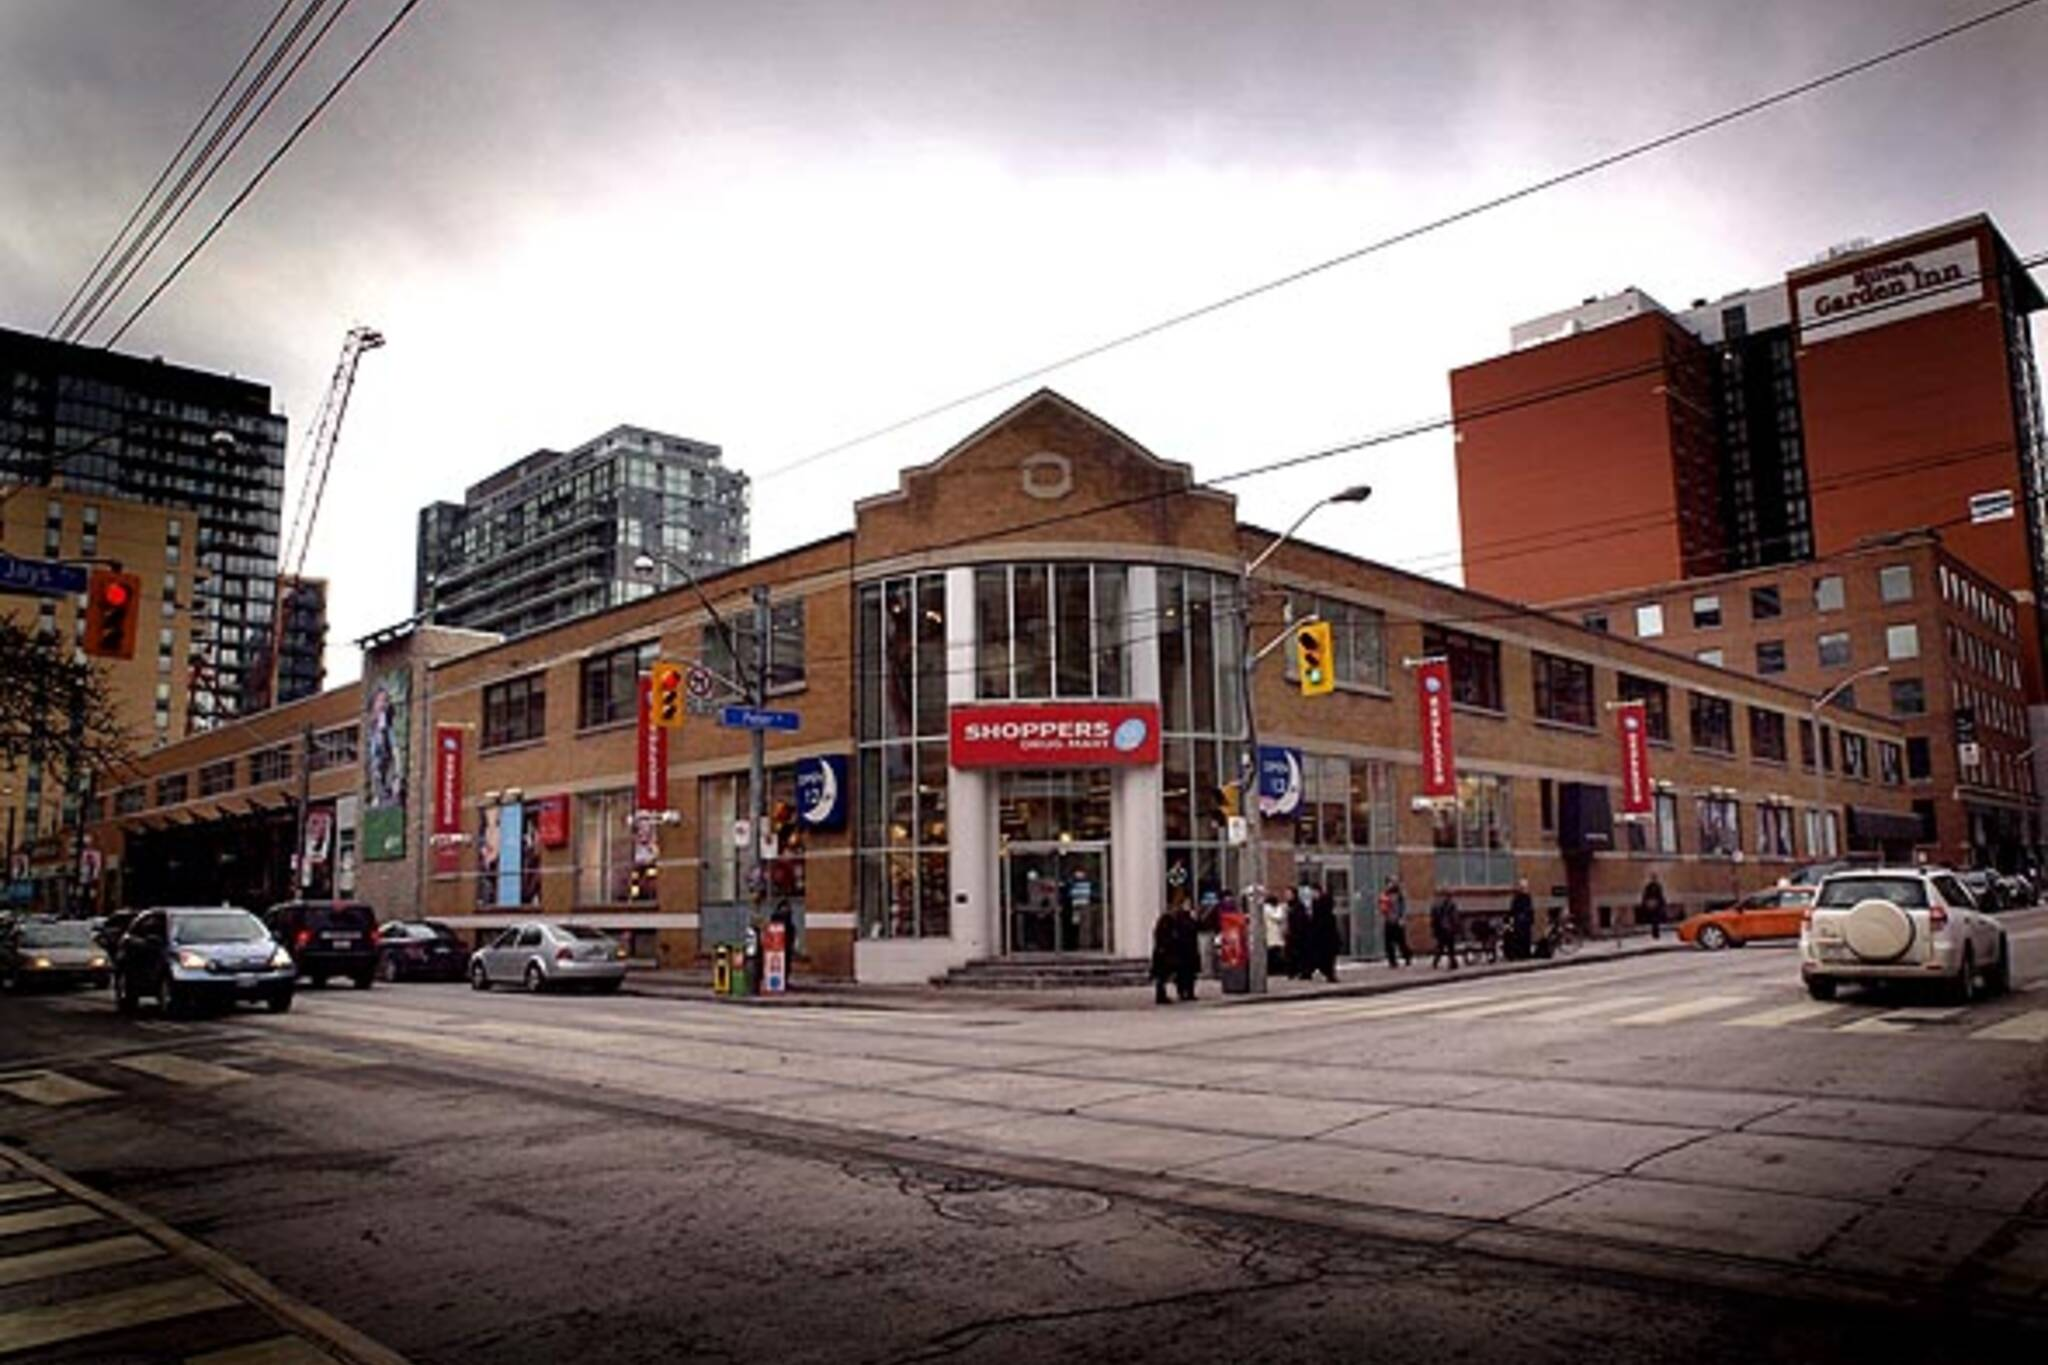 Northwest corner of King West and peter